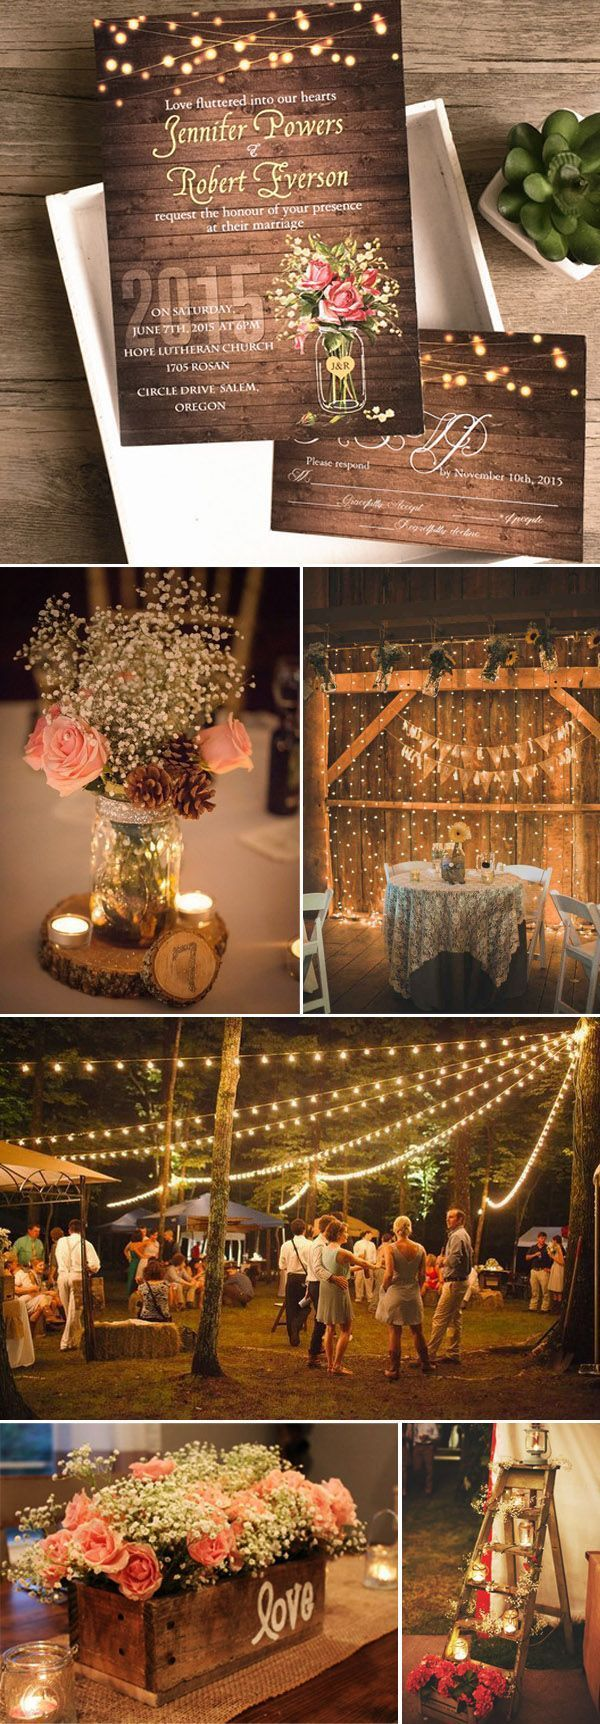 ideas for country wedding invitations%0A country rustic wedding invitations for spring      inspired by mason jars  and string lights